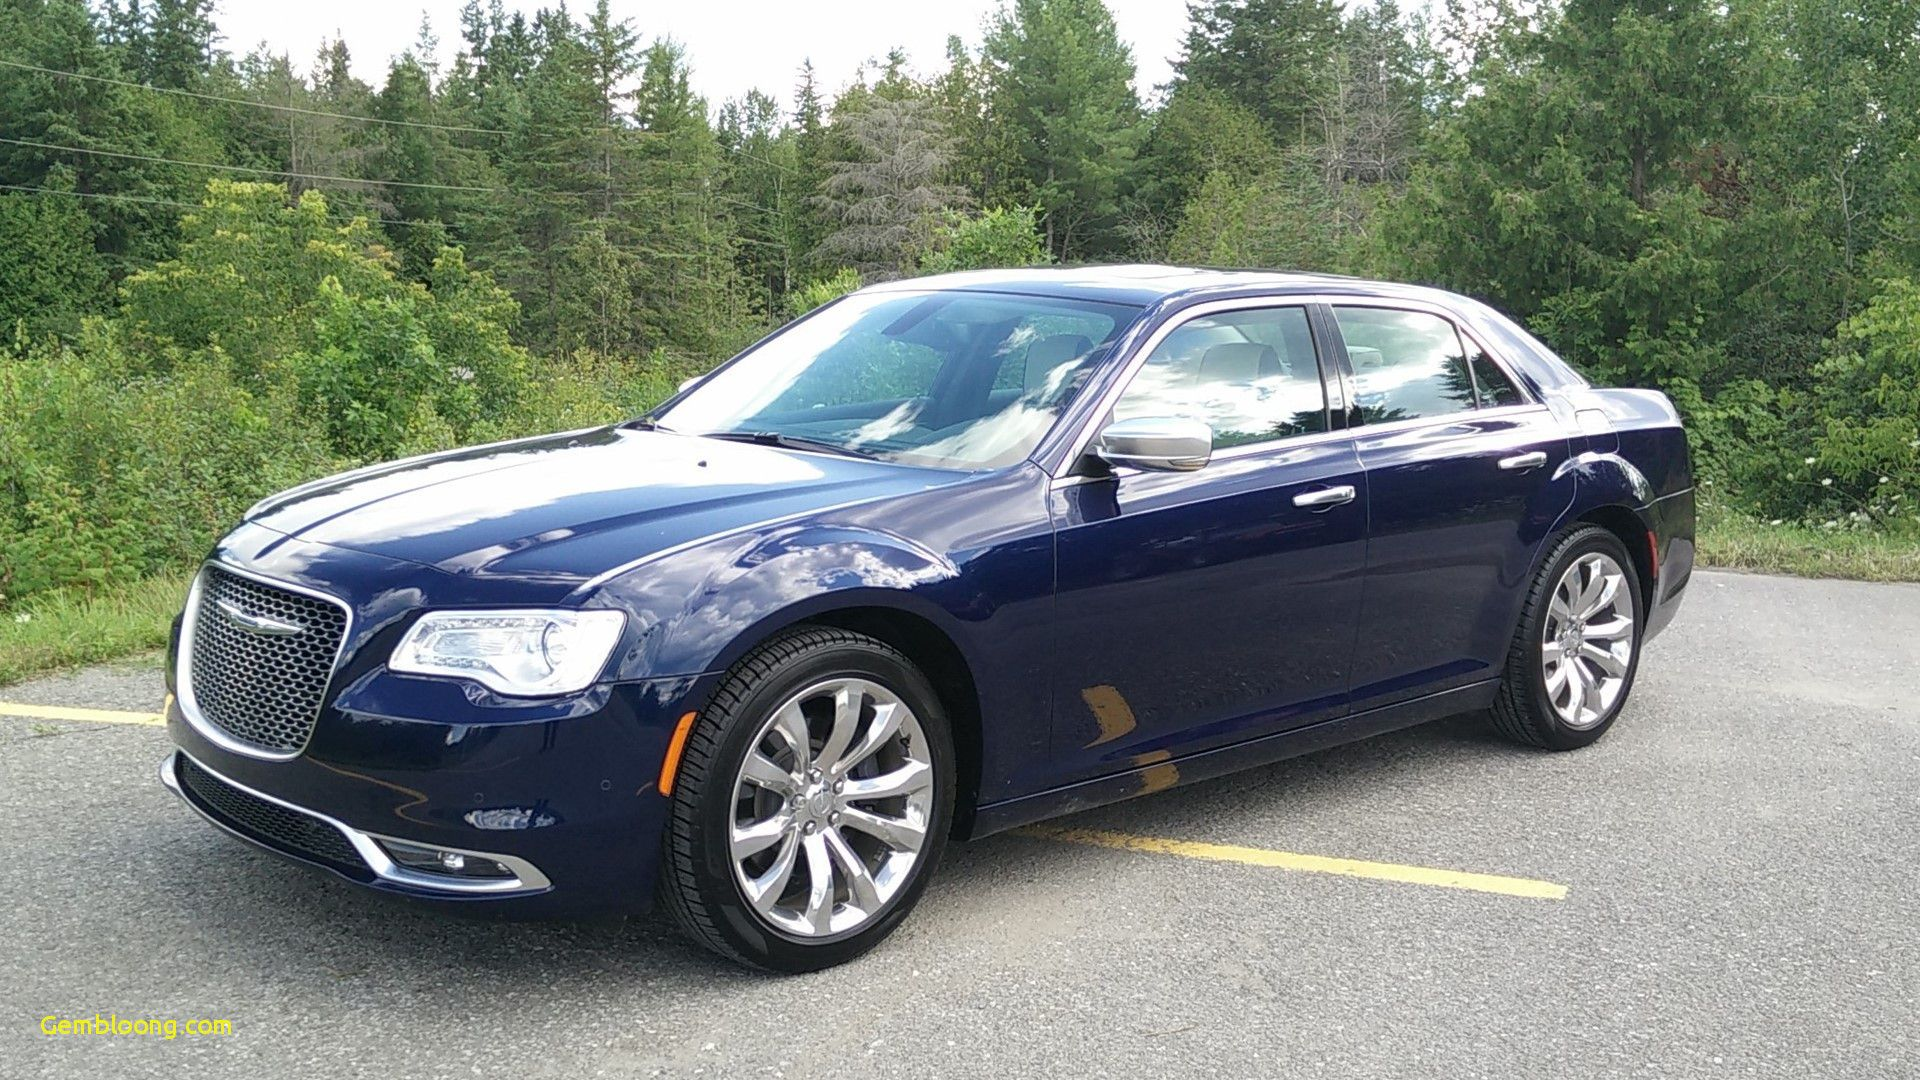 2020 Chrysler 100 Price